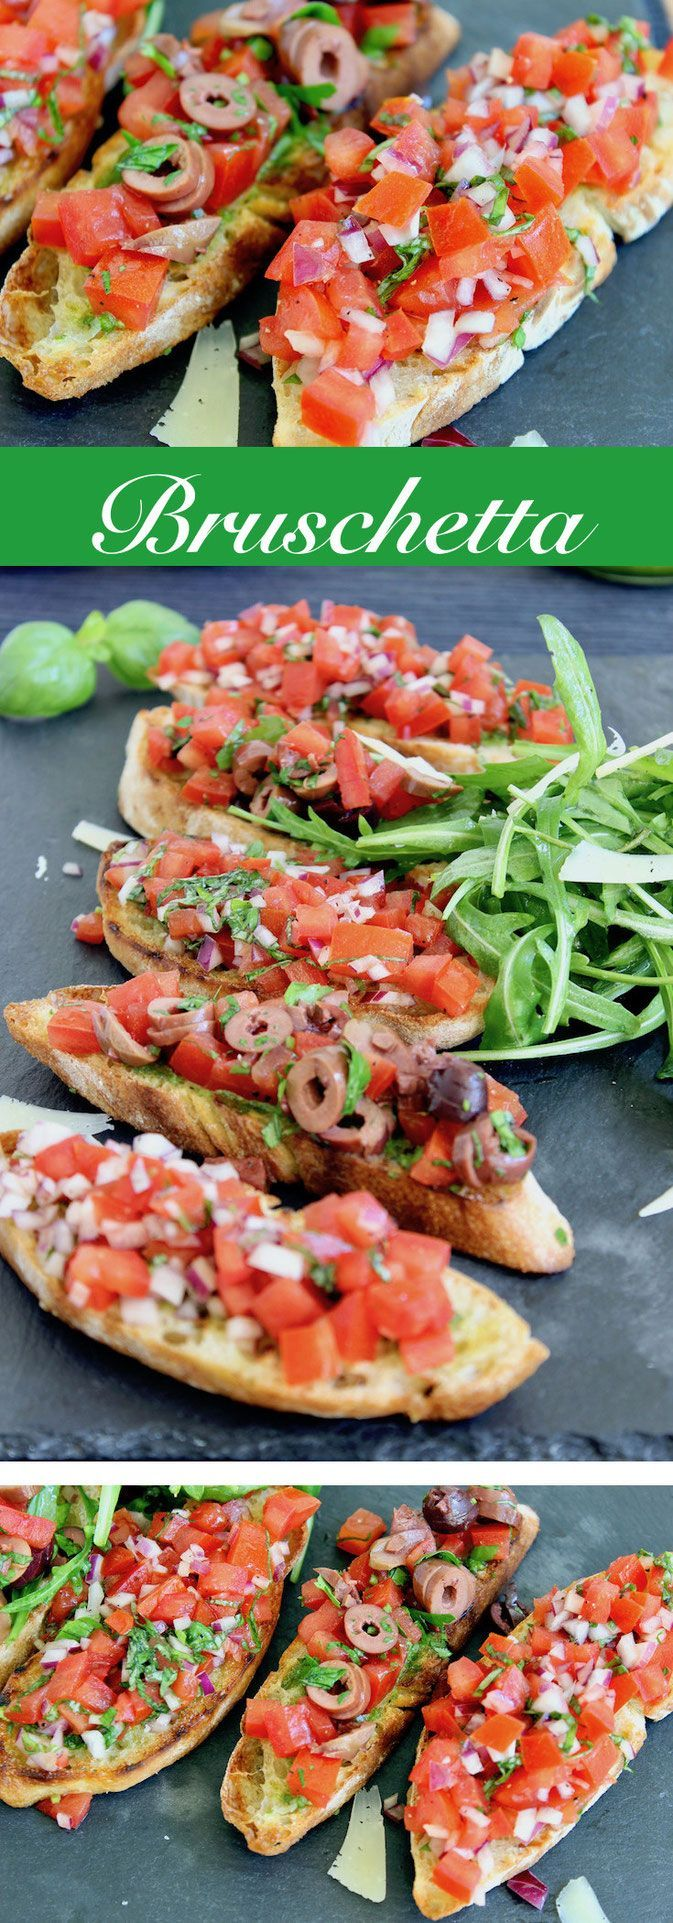 Photo of Bruschetta, die perfekte Vorspeise!